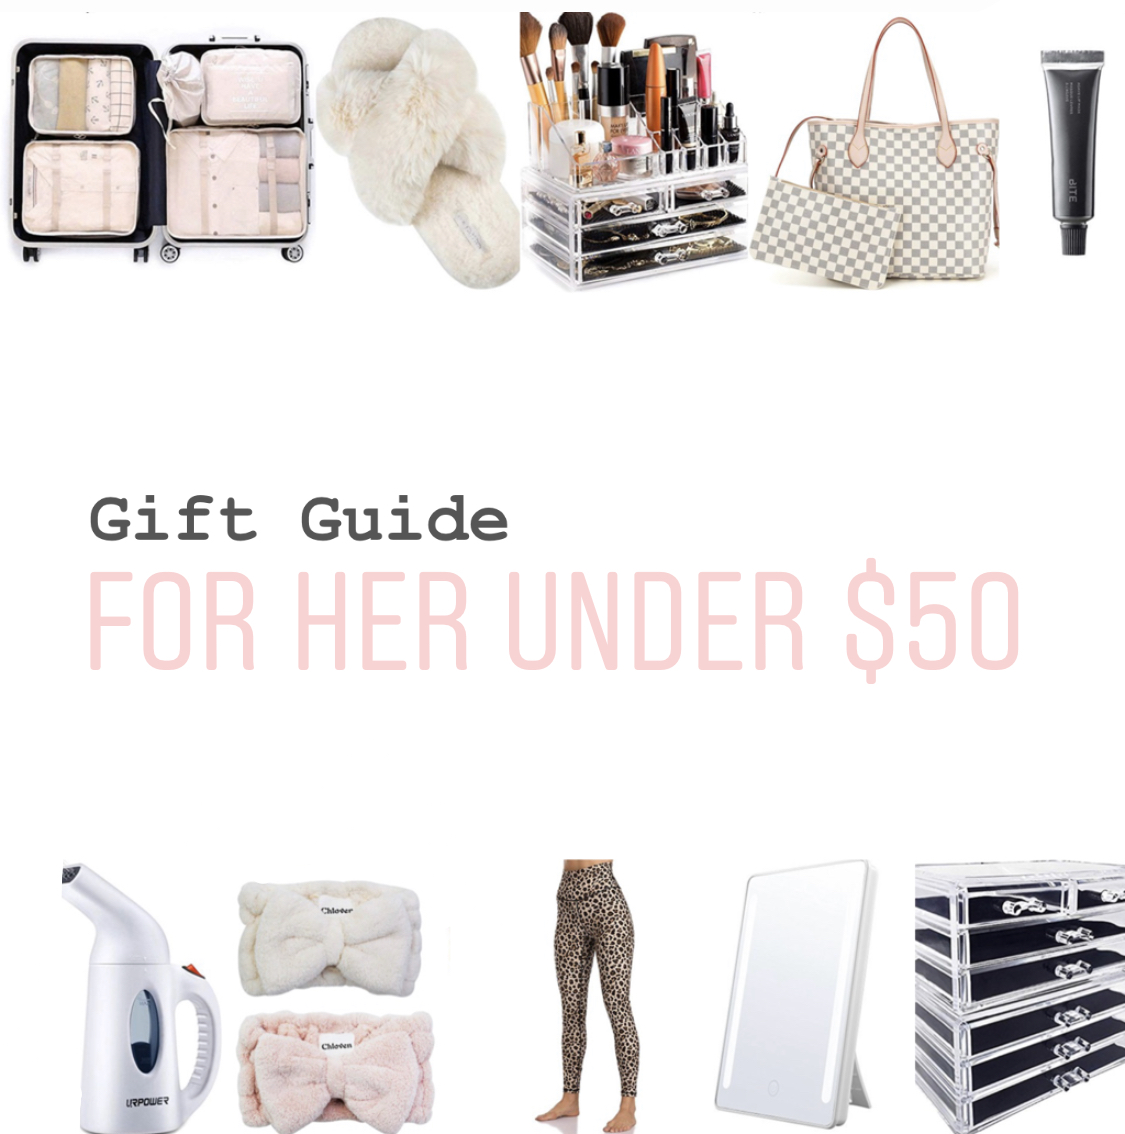 25 Gifts for HER Under $50